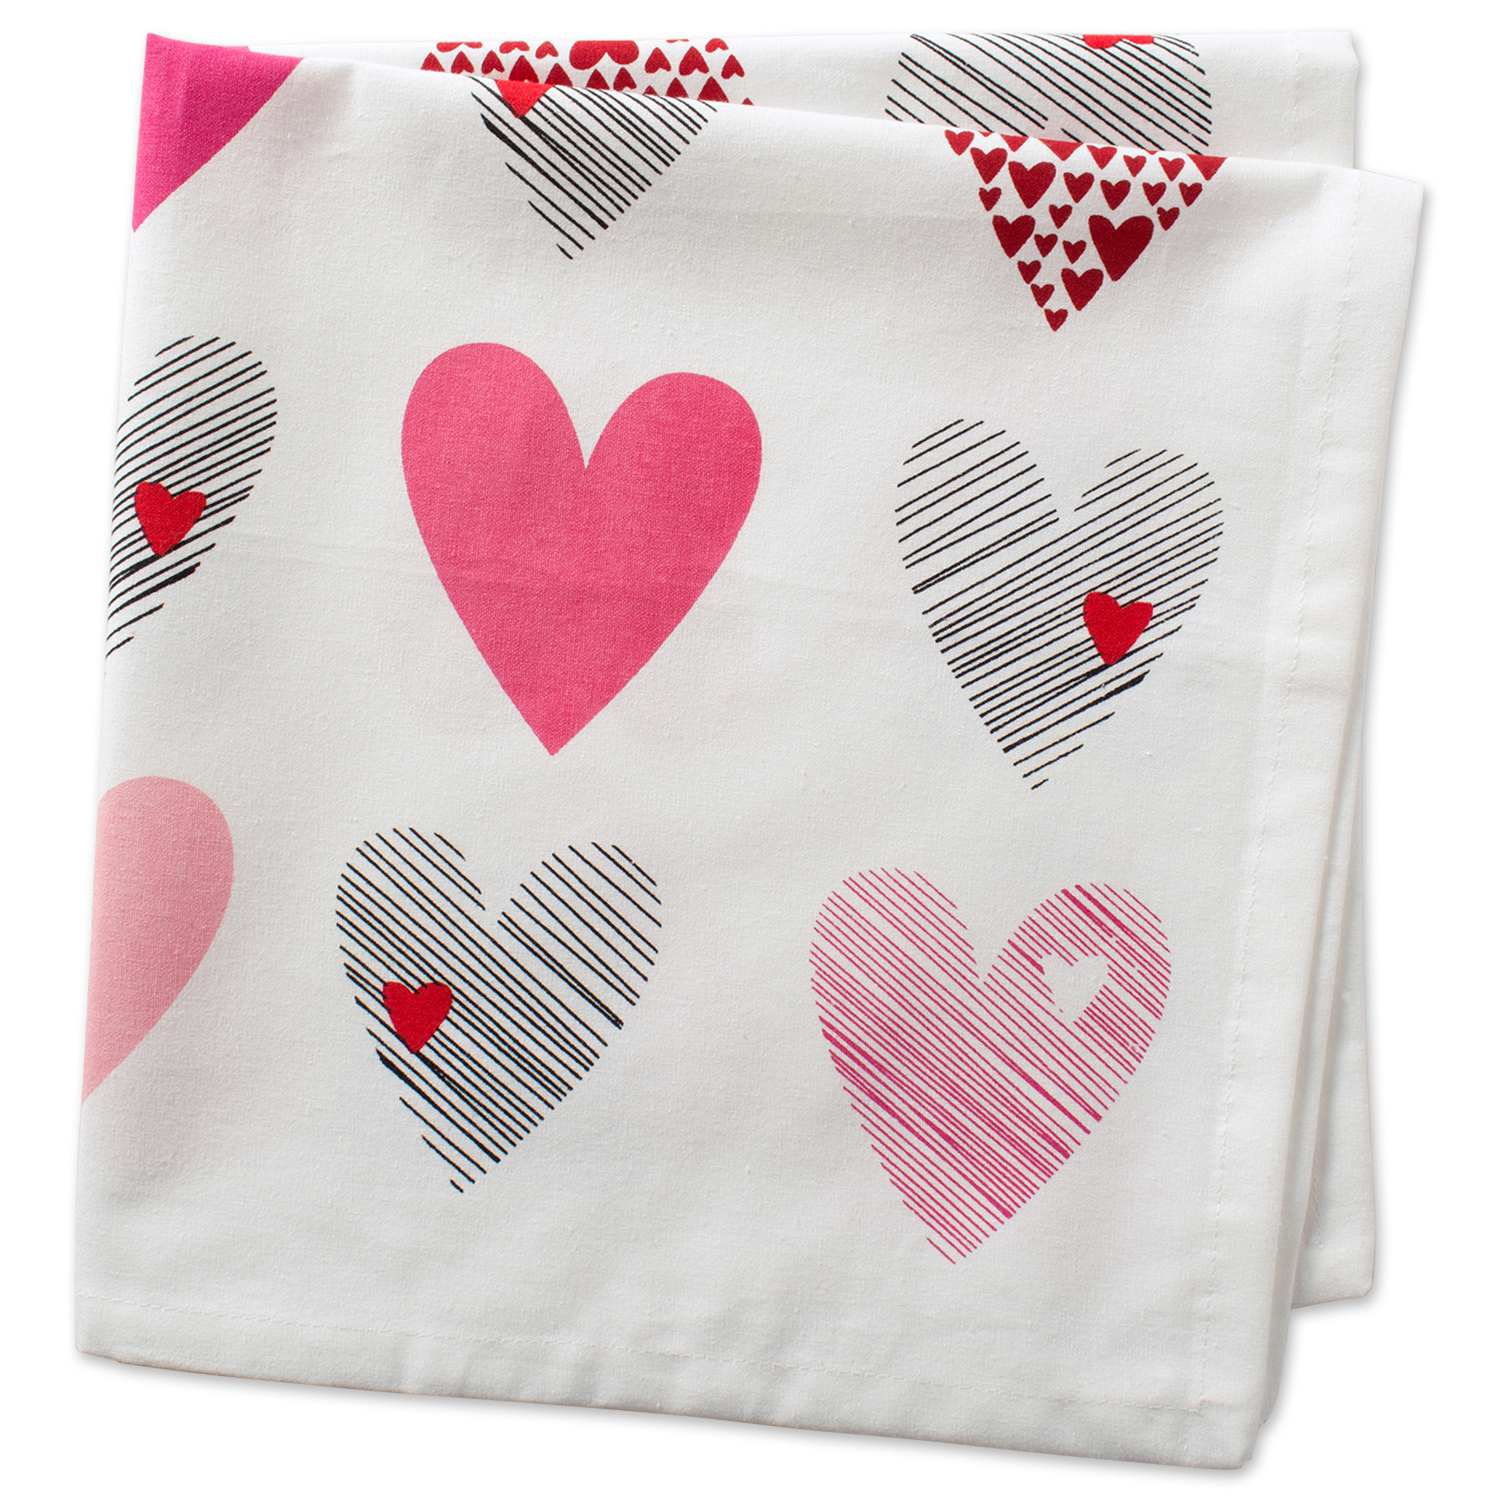 variation thumbnail of Valentine's Day Lots Of Love Napkin Set 6